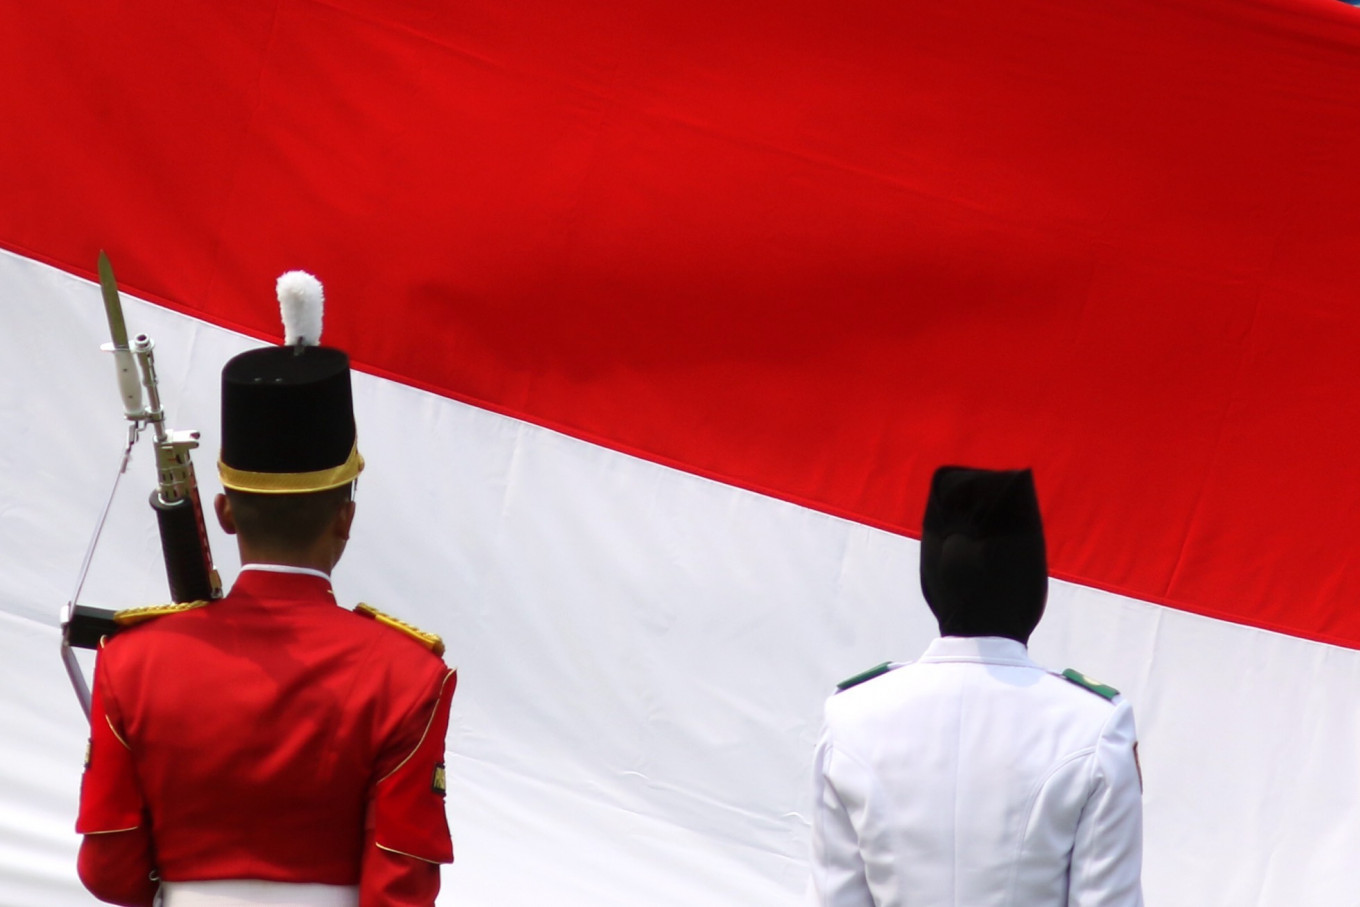 Tensions in Papua and hyper-nationalism in Indonesia